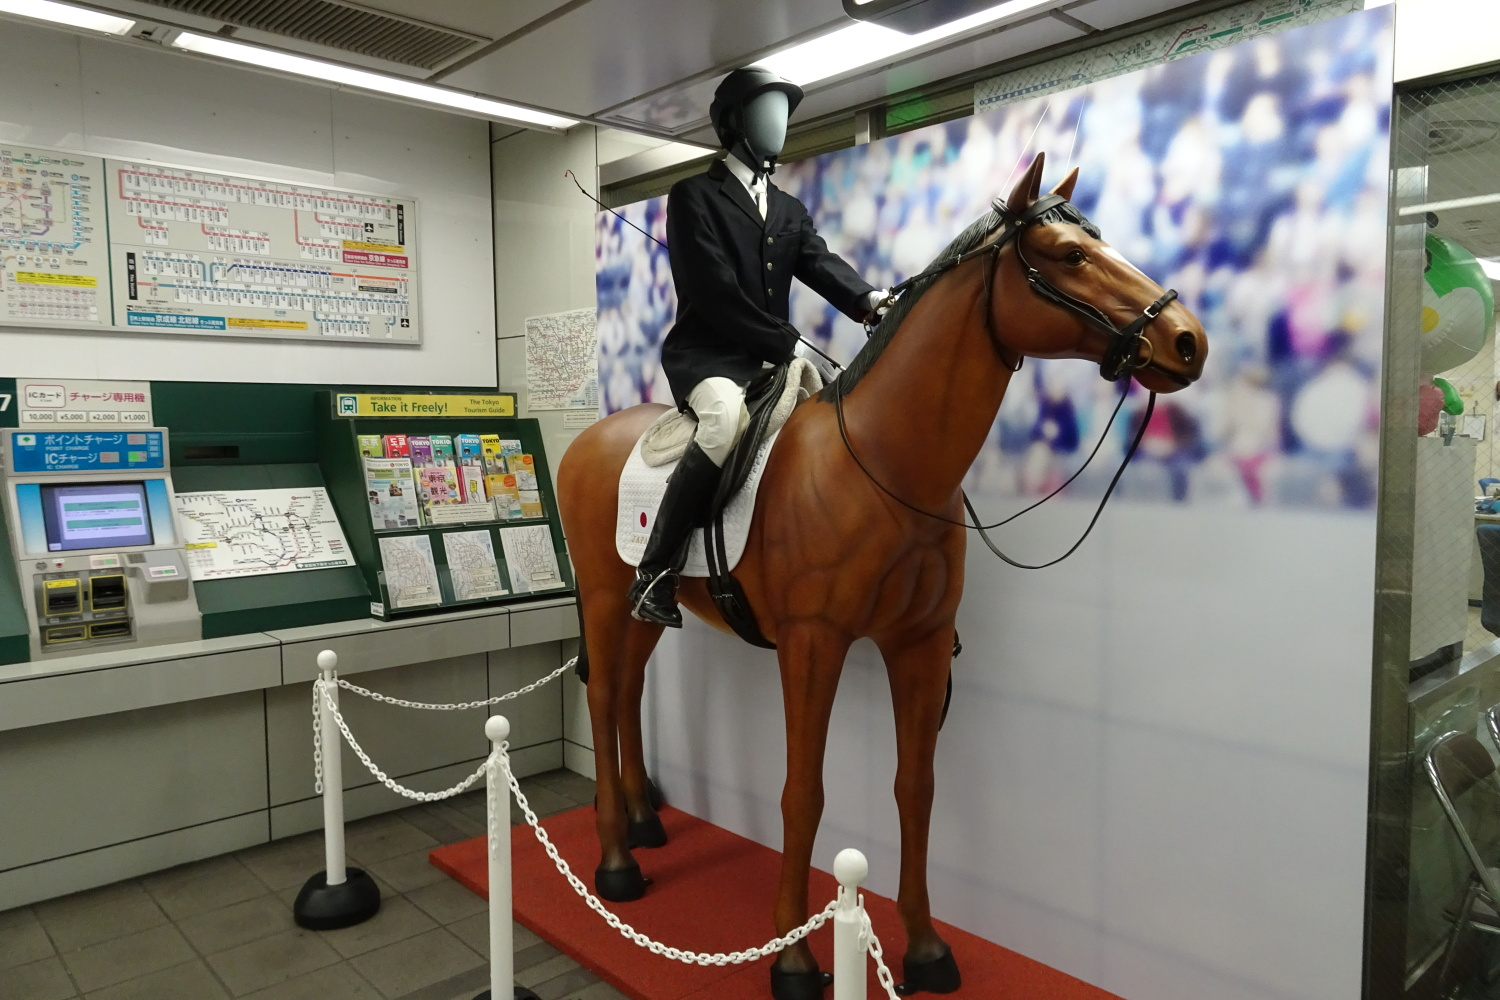 It is horse image in Oedo Line Nerima Station